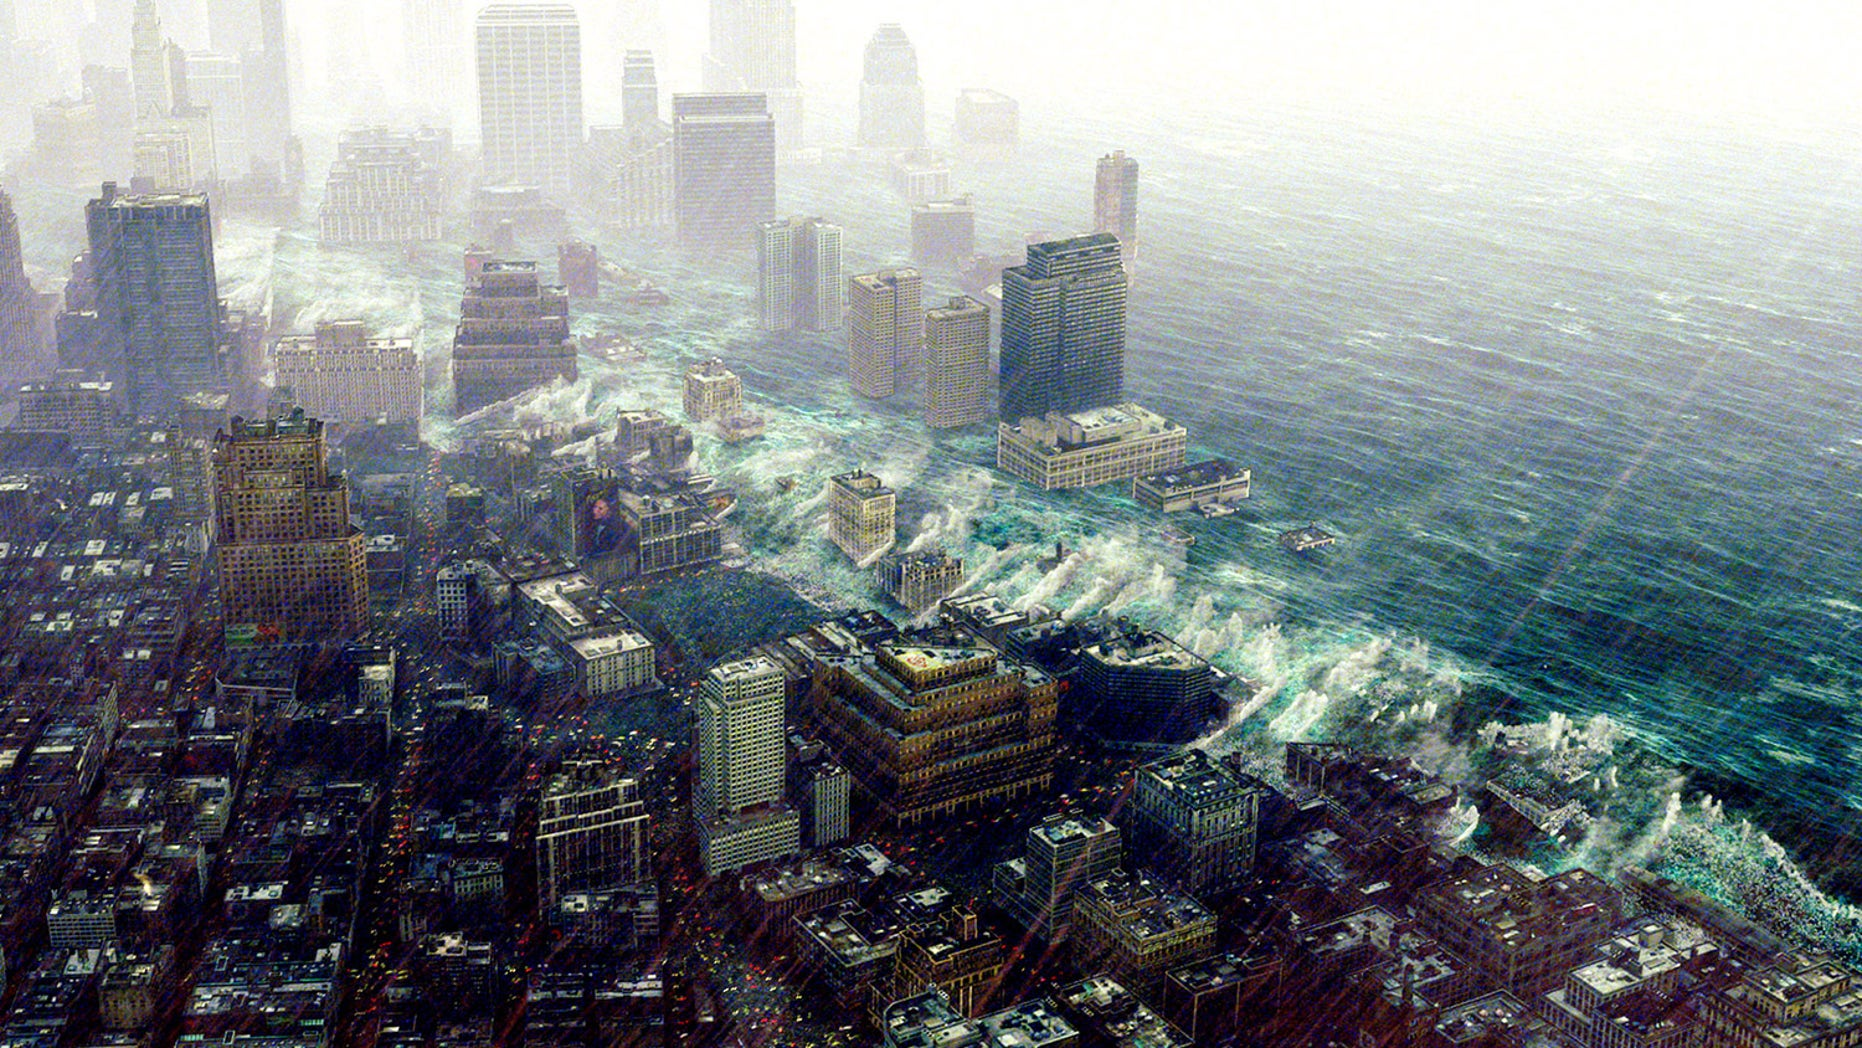 """The 2004 film """"The Day After Tomorrow"""" imagined a world in which the complete collapse of a climate-regulating Atlantic Ocean current triggered catastrophic sea-level rise and extreme weather events in the U.S."""